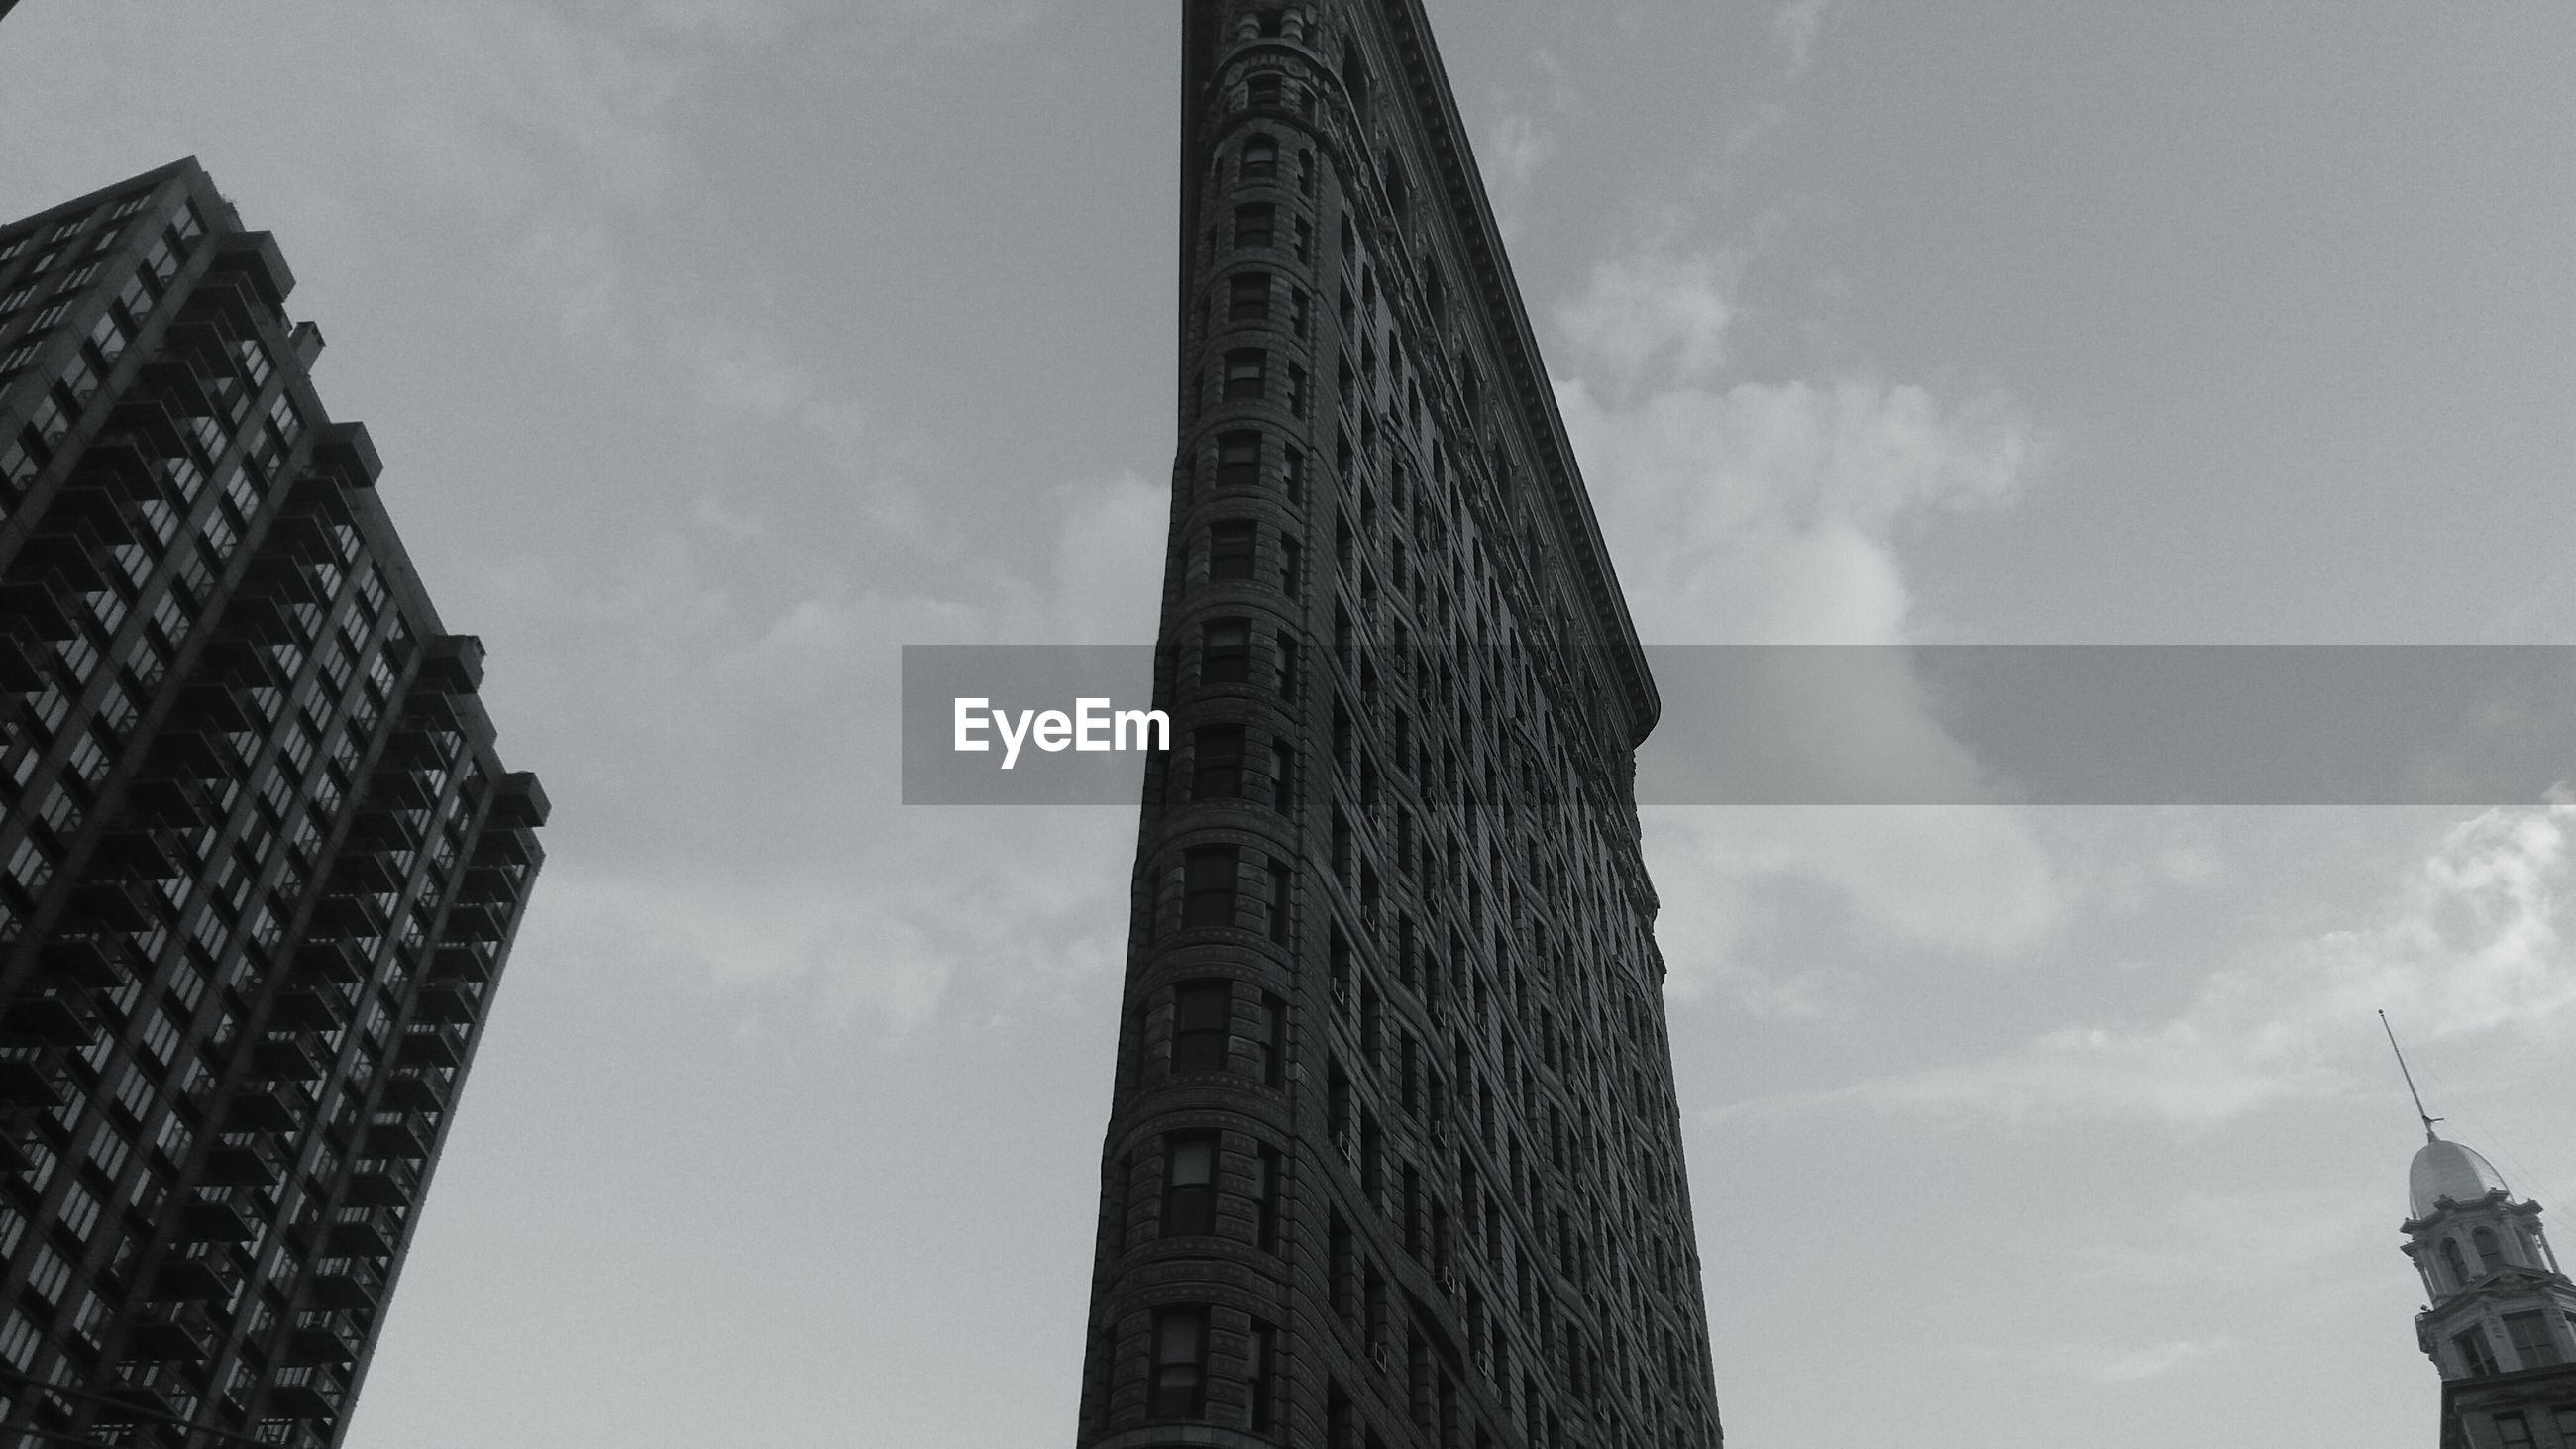 architecture, built structure, low angle view, building exterior, tall - high, sky, tower, city, skyscraper, cloud - sky, capital cities, office building, tall, modern, building, travel destinations, famous place, outdoors, day, no people